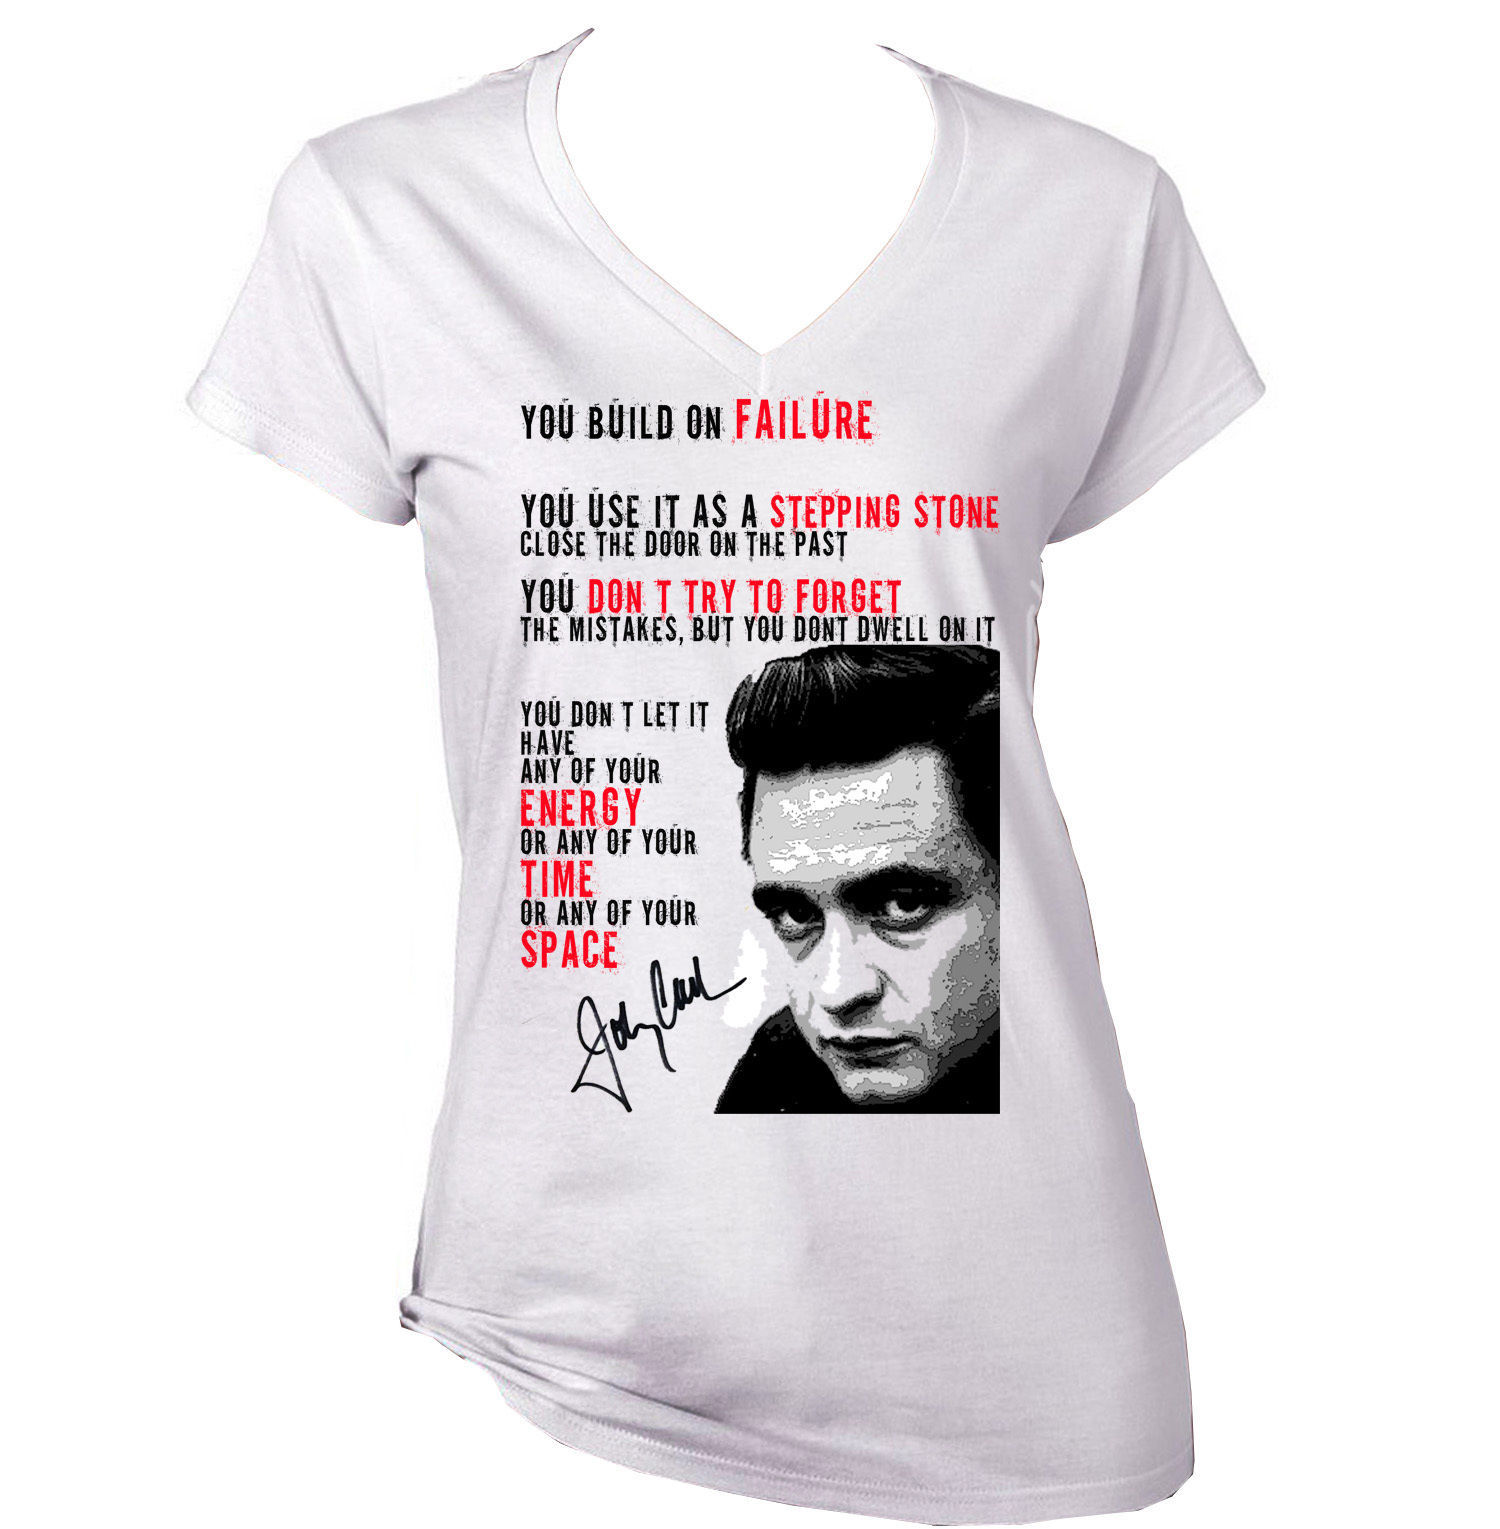 JOHNNY CASH QUOTE 1 - NEW AMAZING GRAPHIC T-SHIRT - S-M-L-XL-XXL